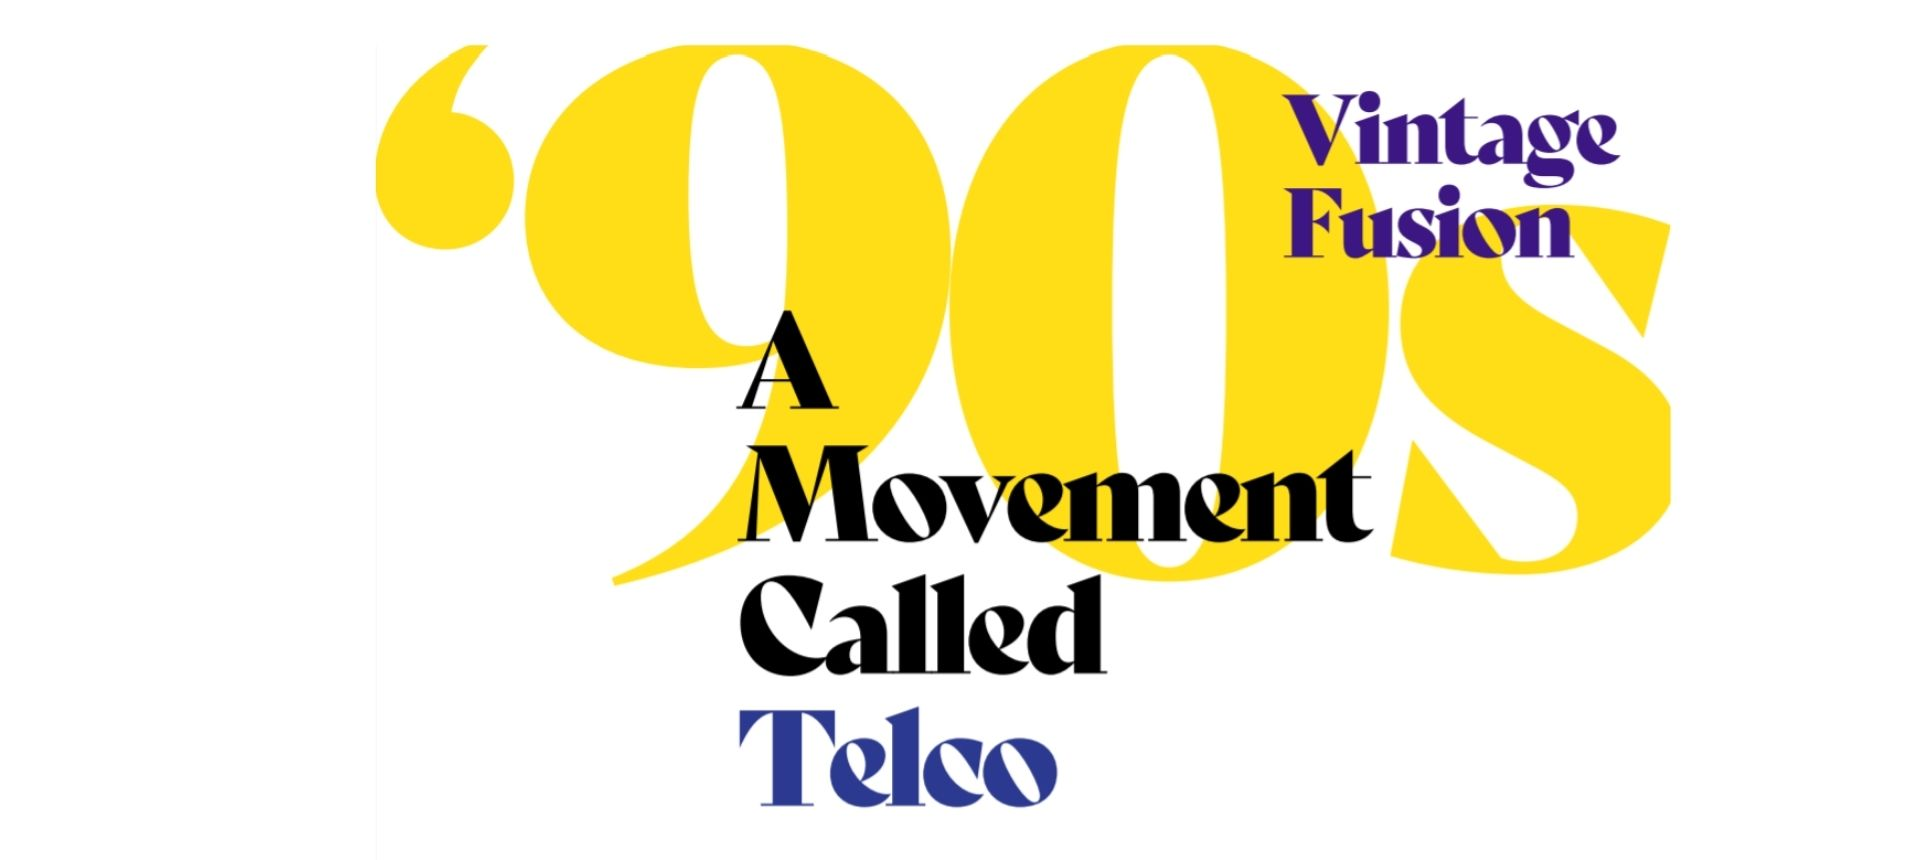 A movement called Telco